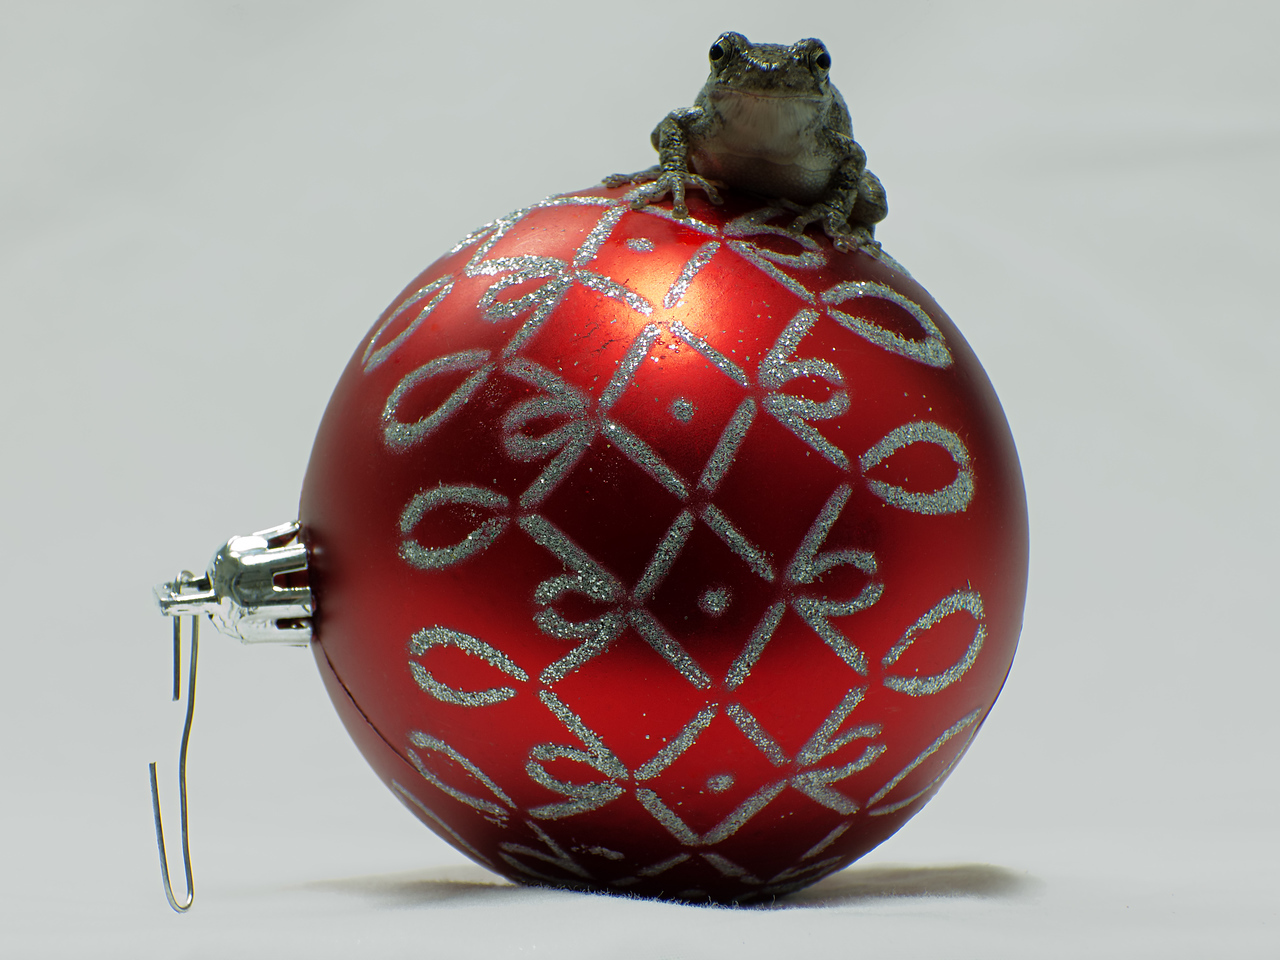 December 13, 2015 - Grey Tree Frog vs. Christmas Ball (might as well?)